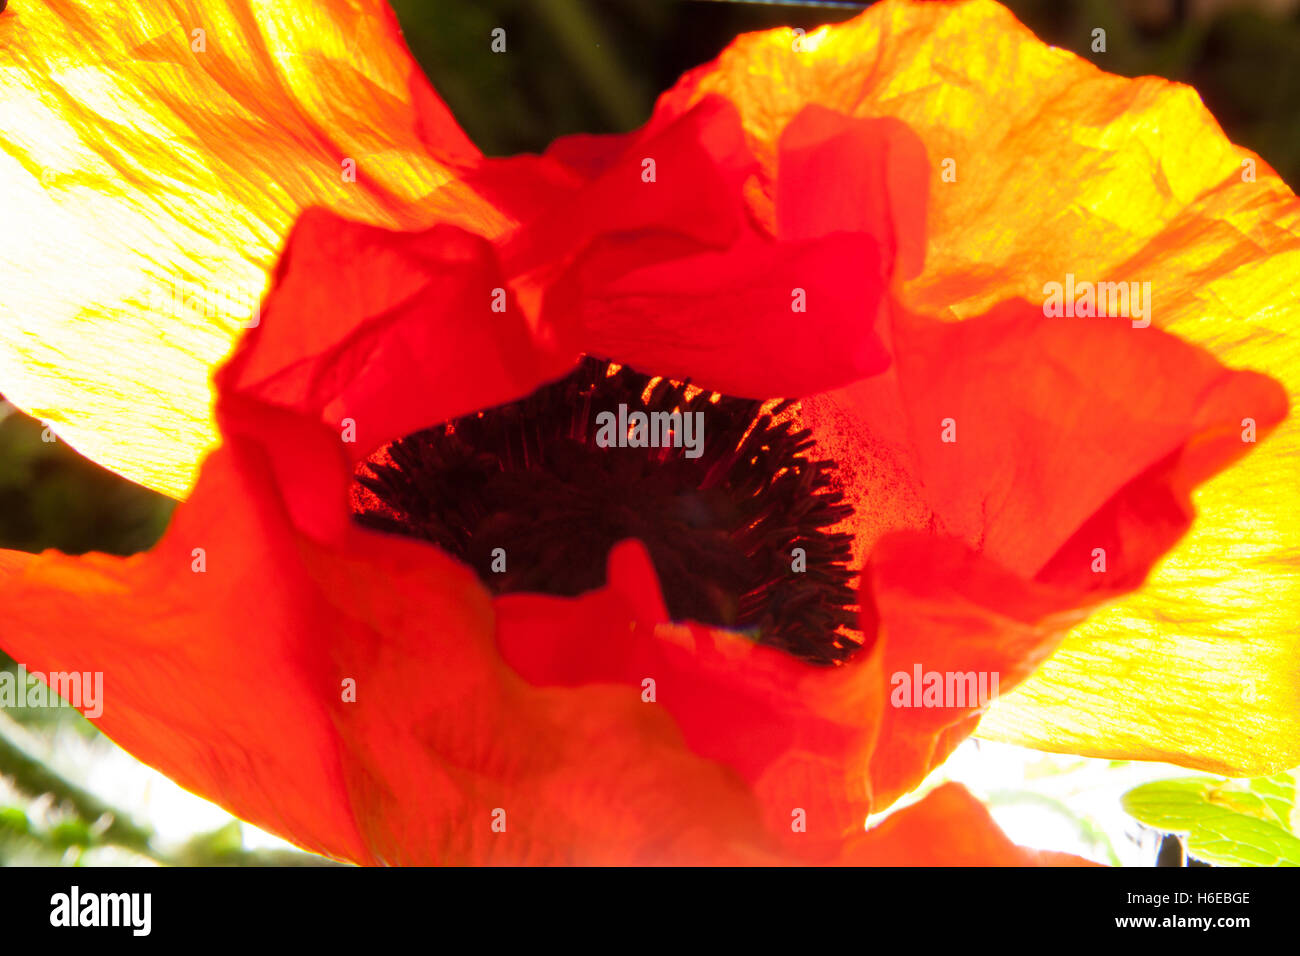 Abstract photograph of a poppy flower, Papaveroideae of the family Papaveraceae, strong back lighting, orange yellow - Stock Image